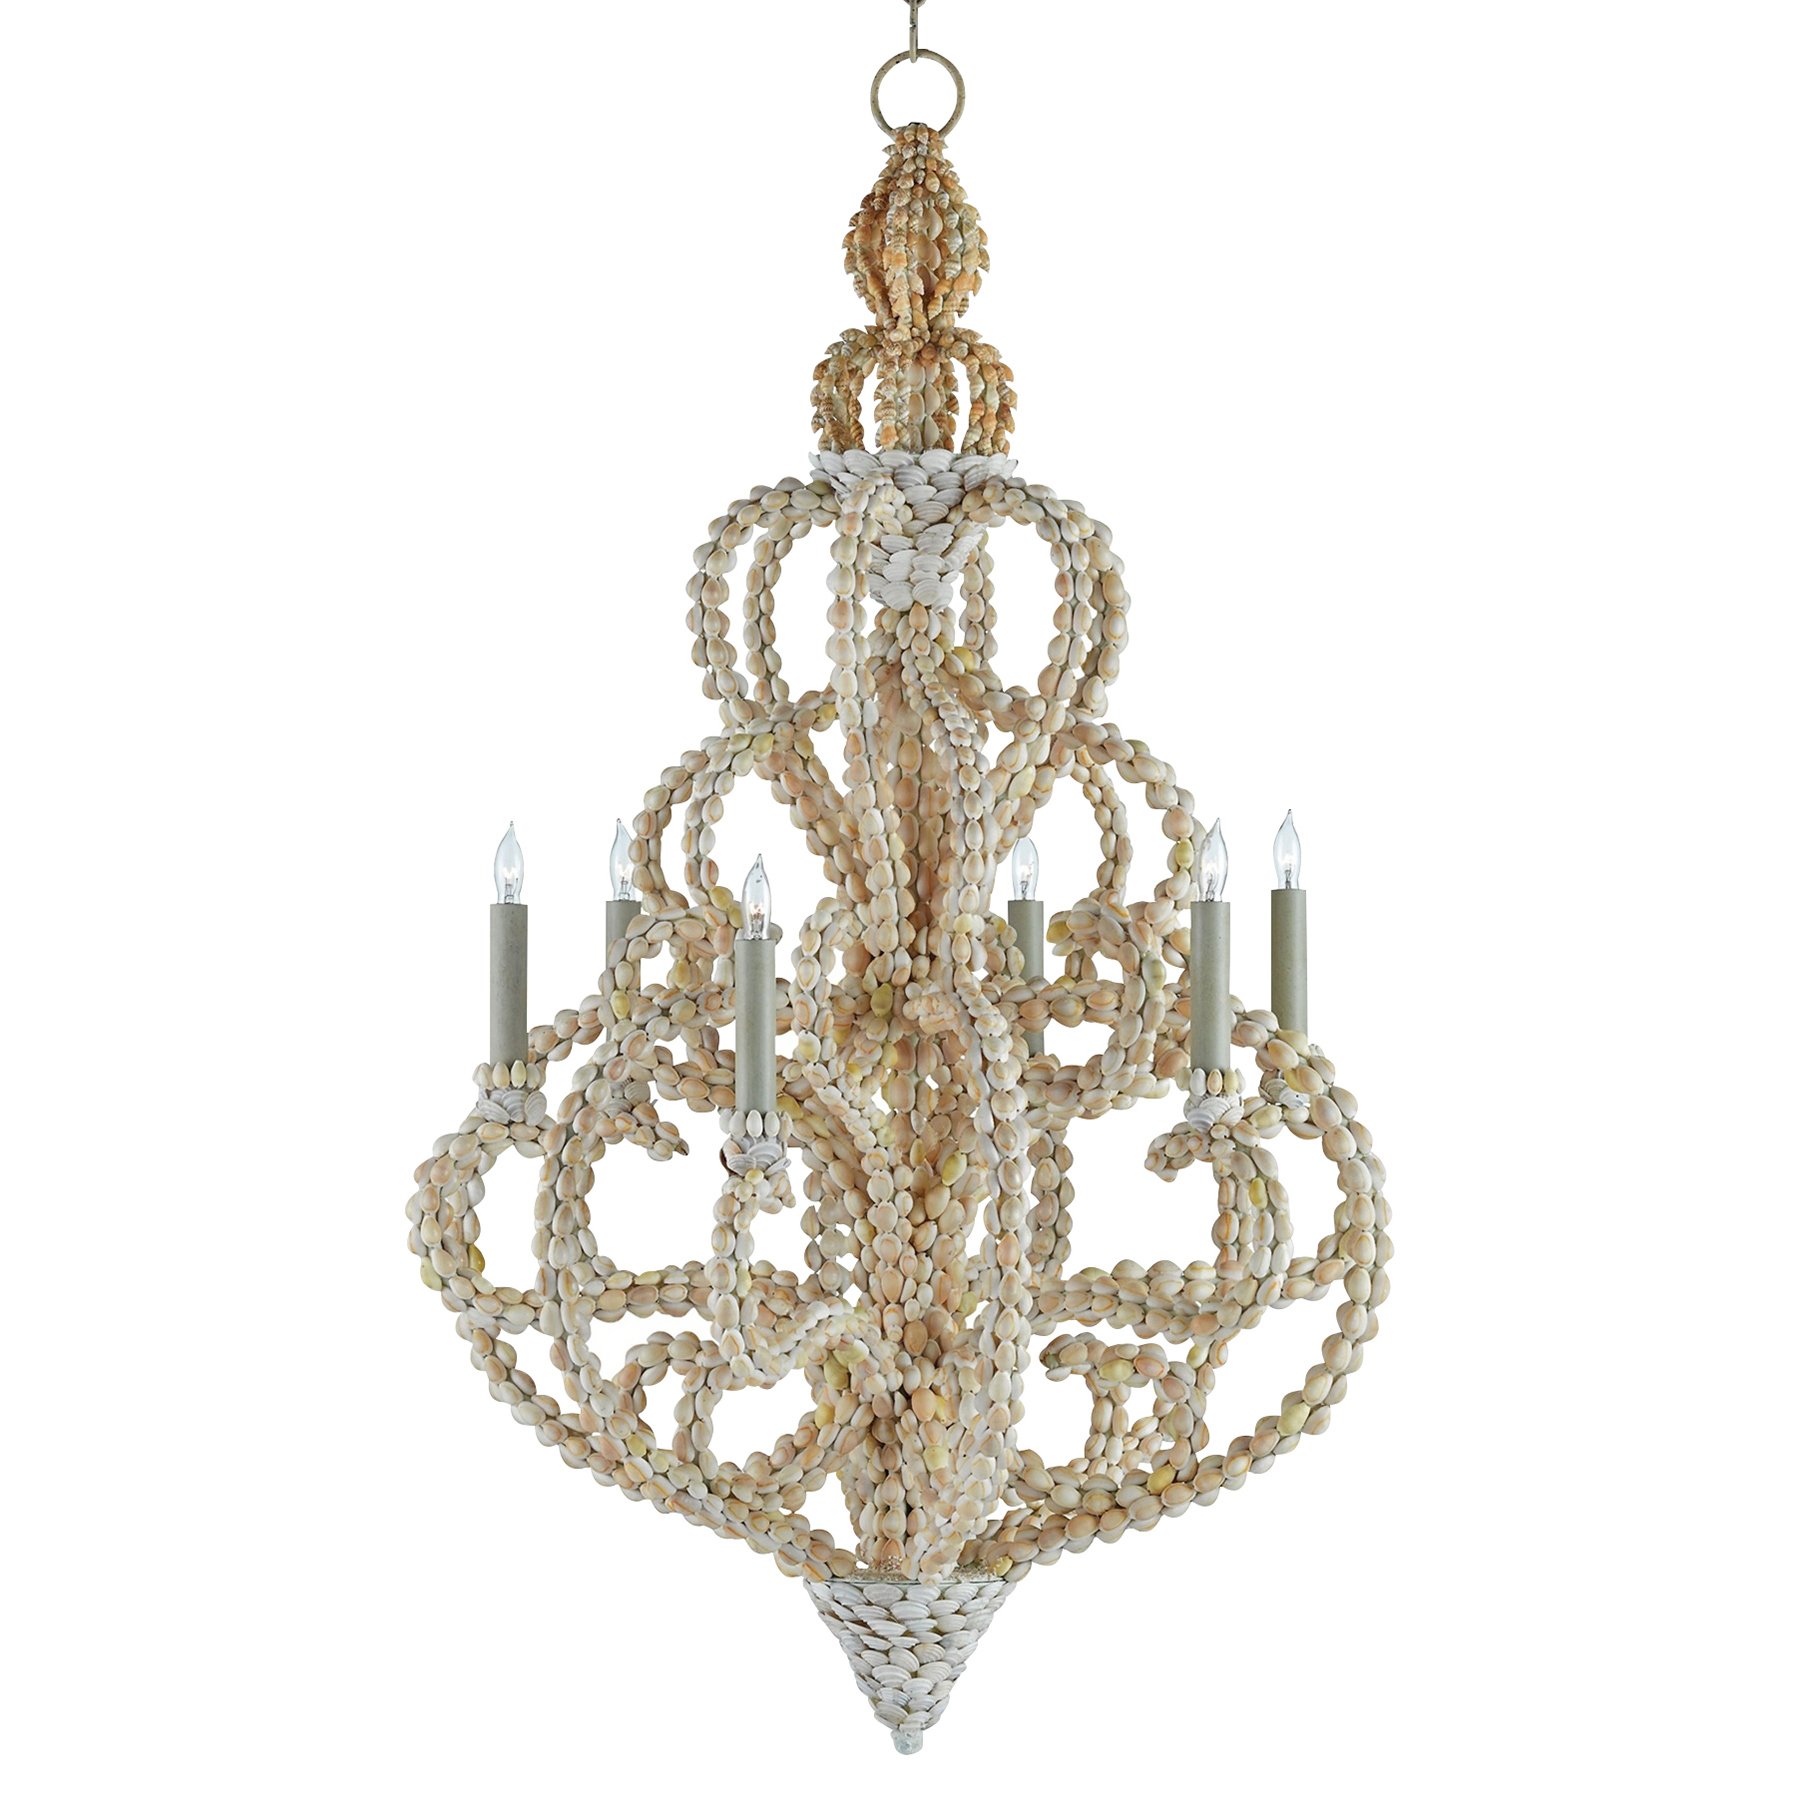 Lucine Coastal Beach Glamorous Natural Shell Chandelier - Small